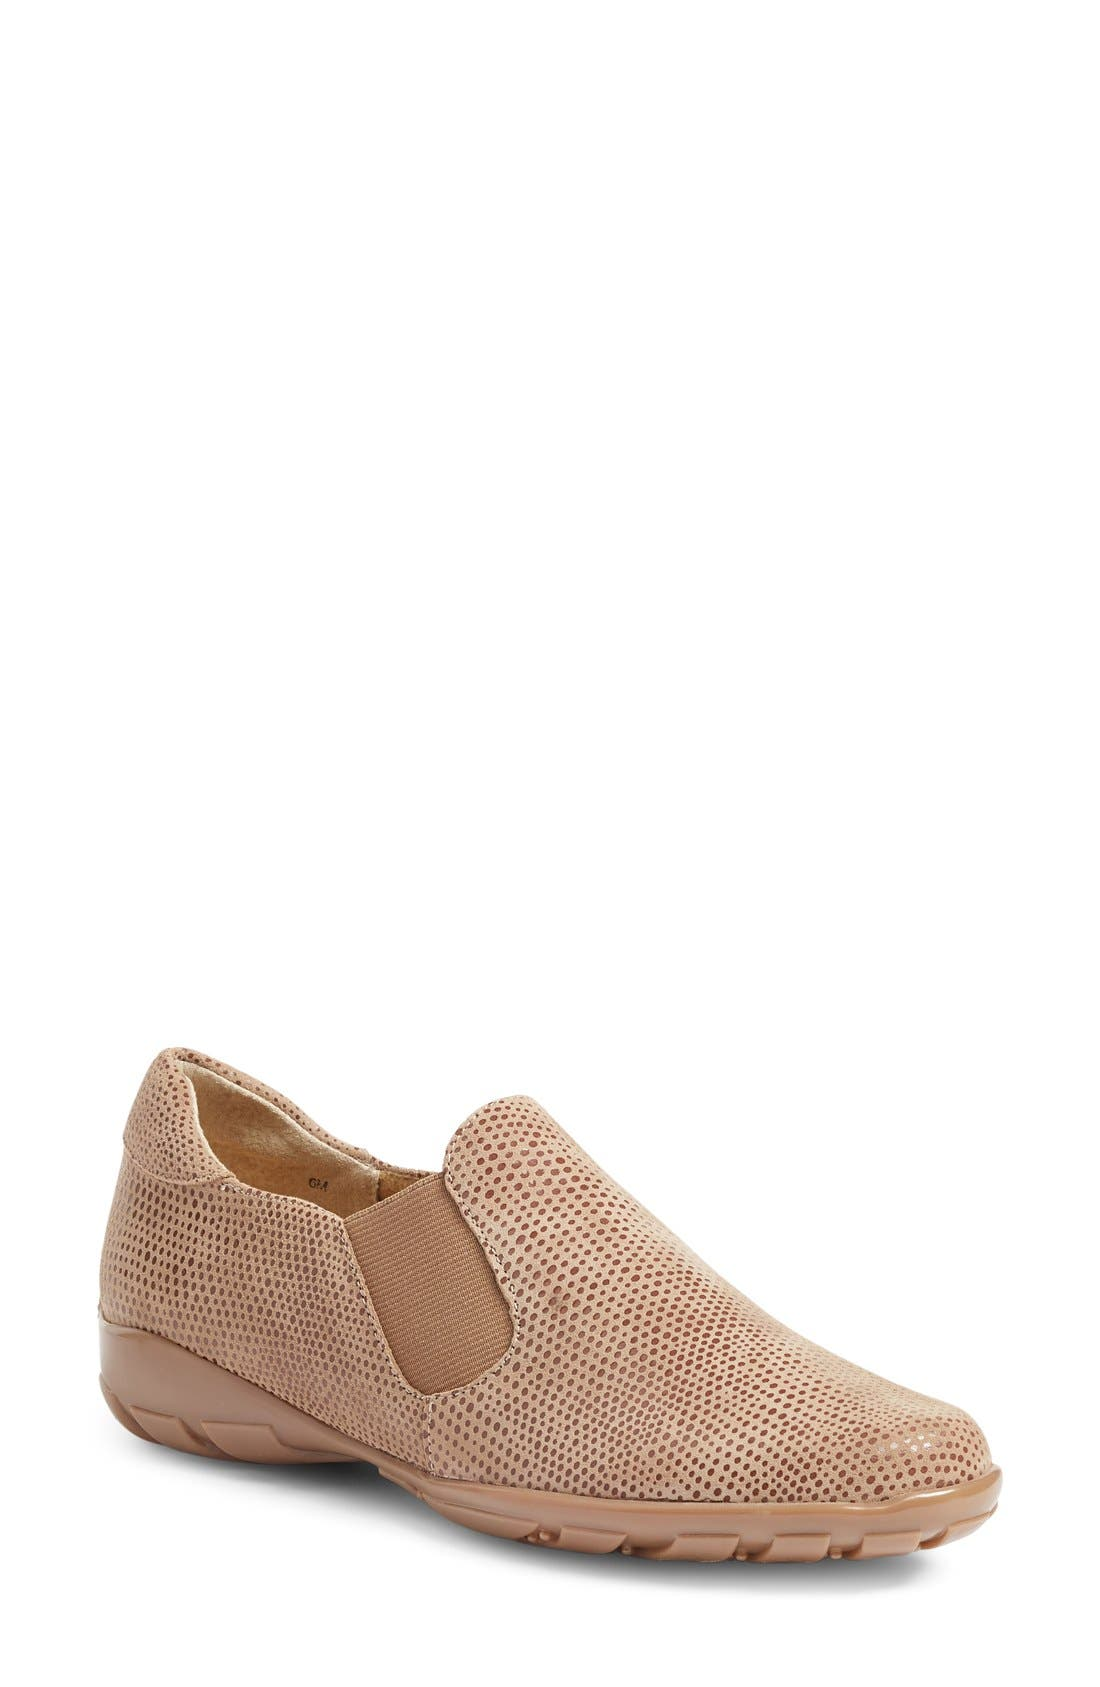 'Anemone' Loafer,                         Main,                         color, Taupe Print